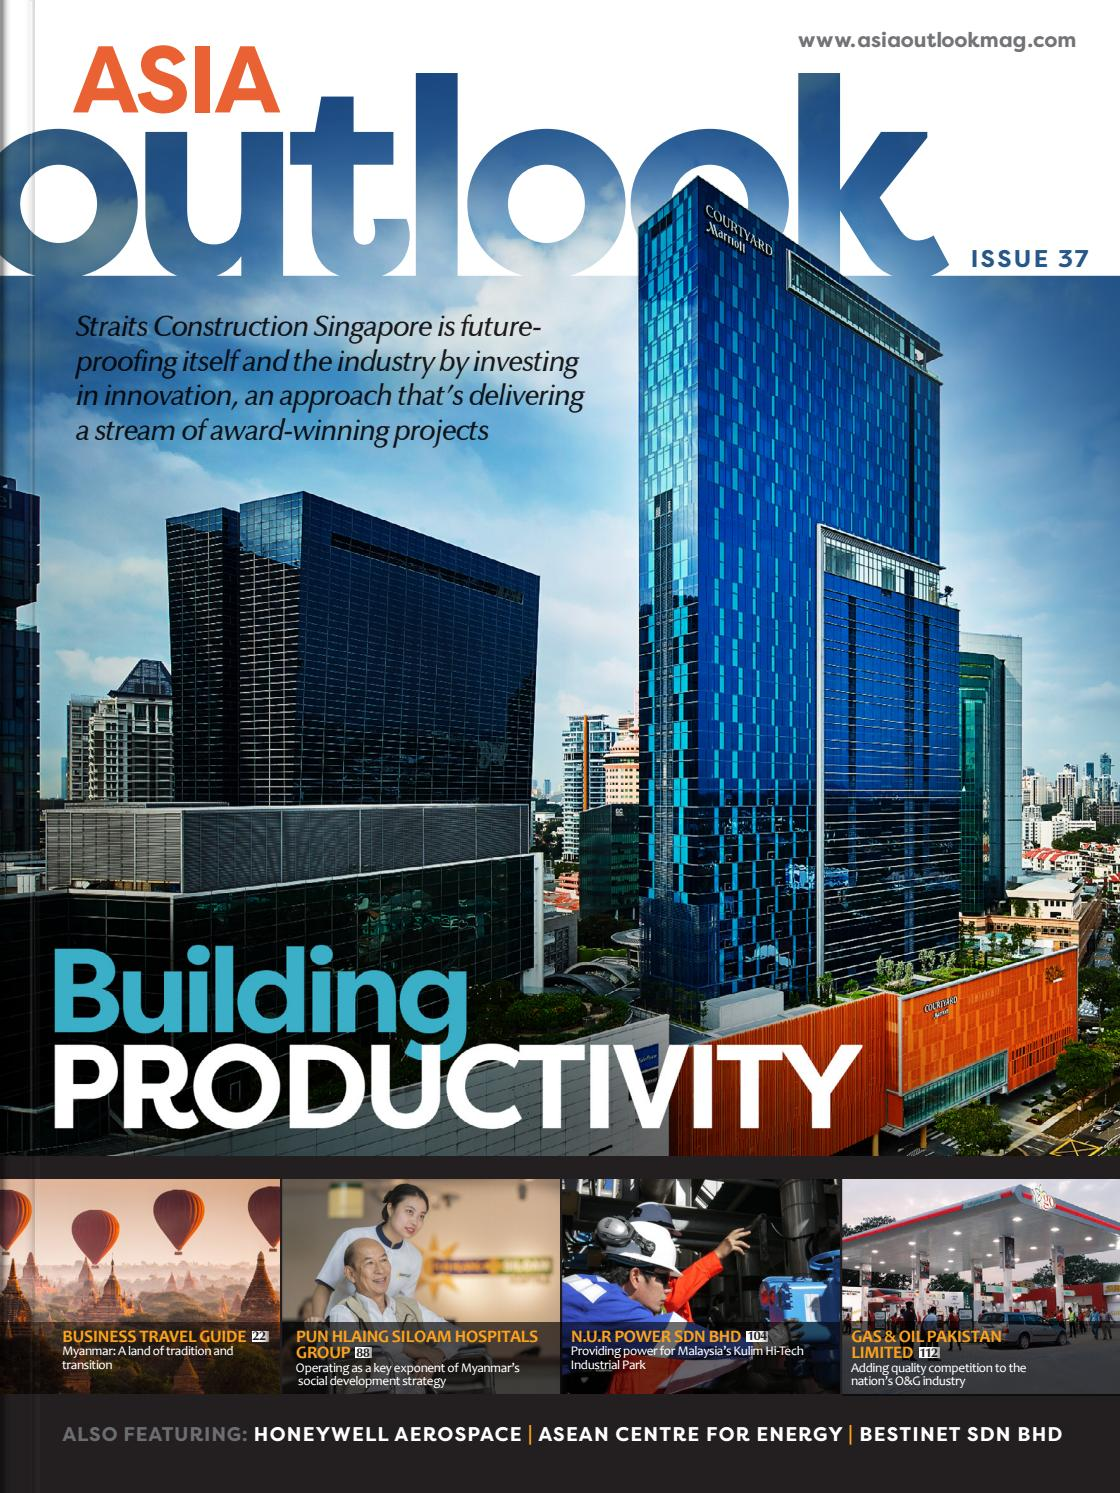 Asia Outlook Issue 37 By Outlook Publishing Issuu